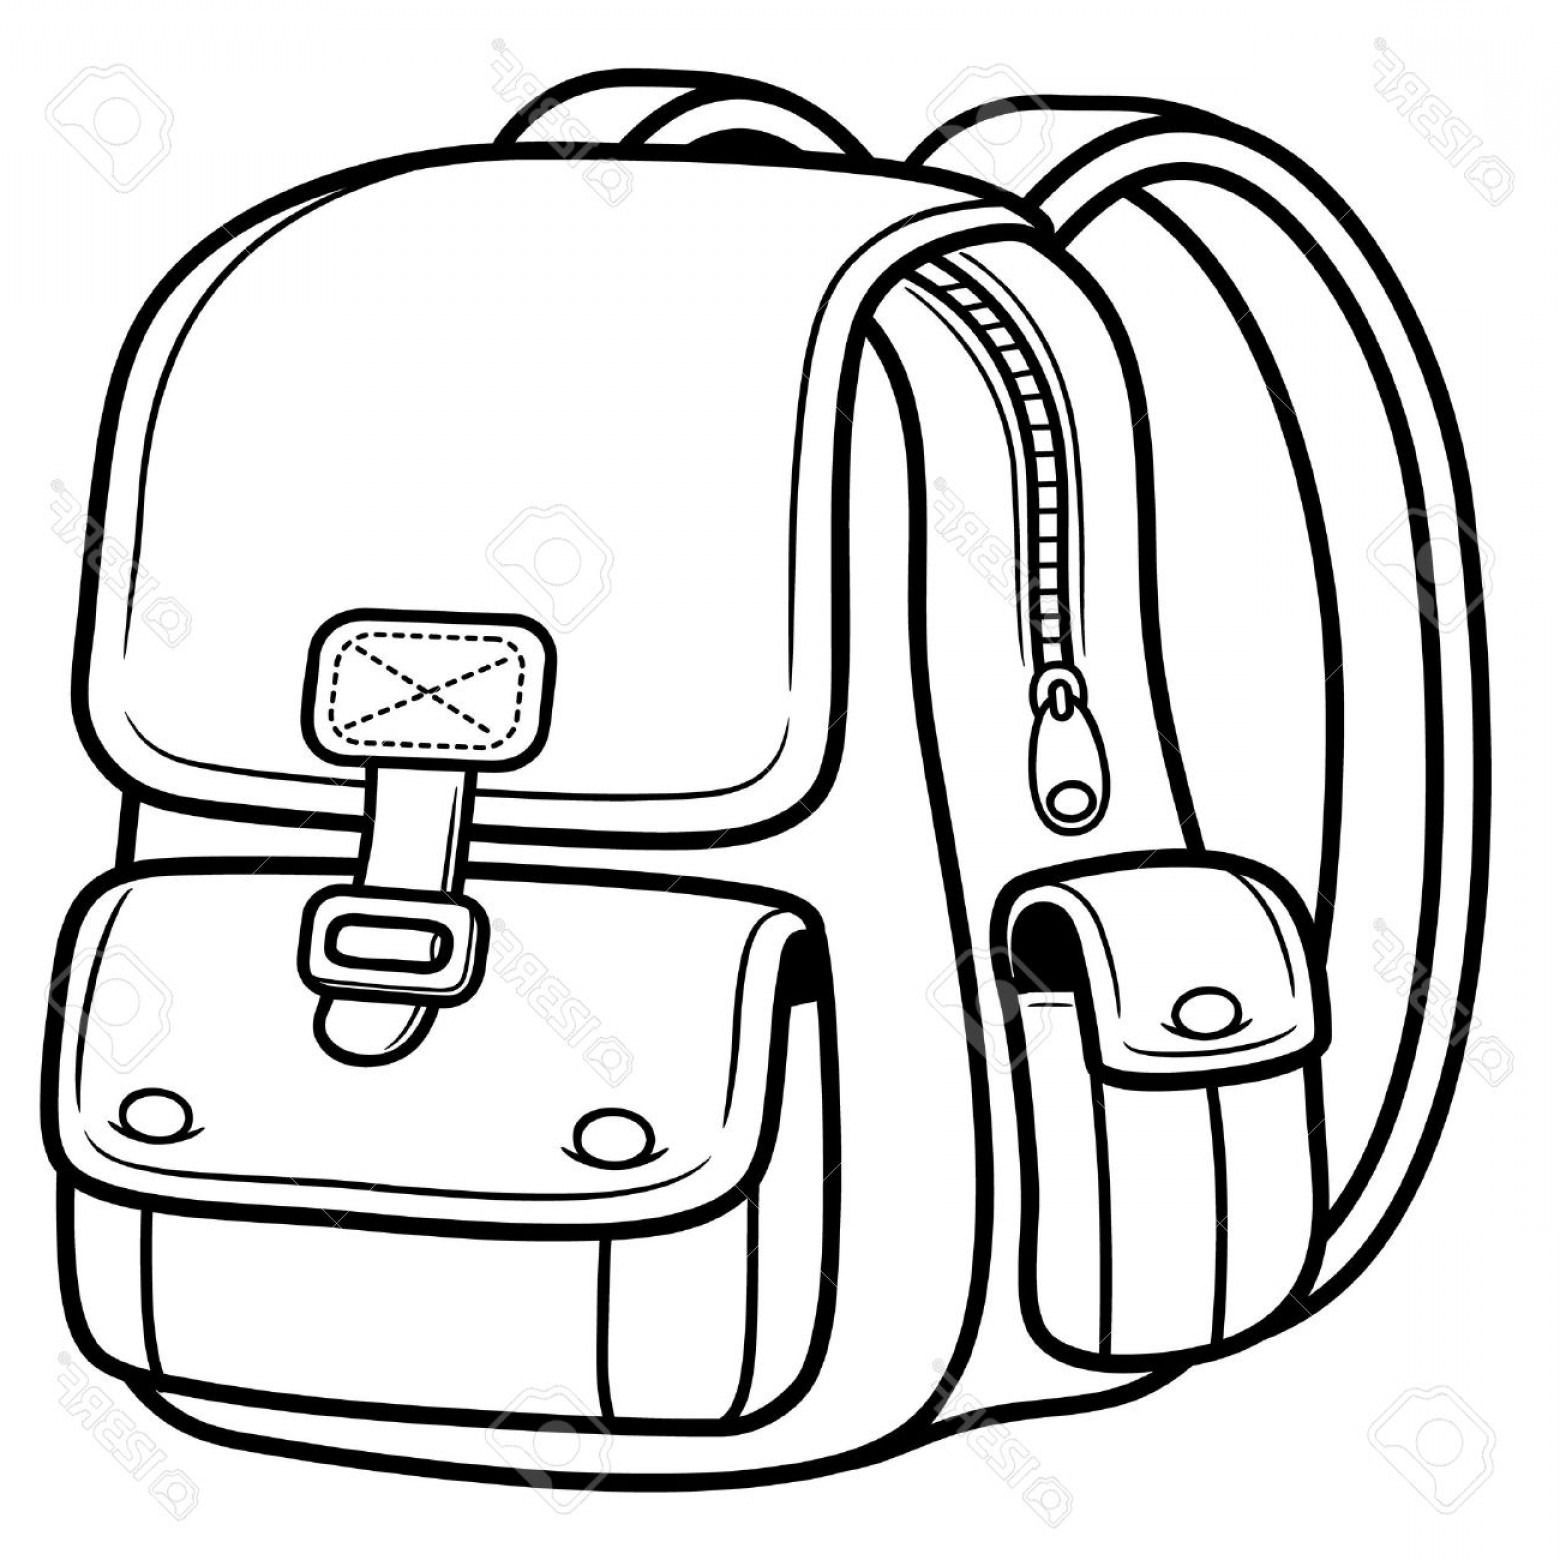 Black and white clipart an old school bag black and white Old School Drawings | Free download best Old School Drawings on ... black and white